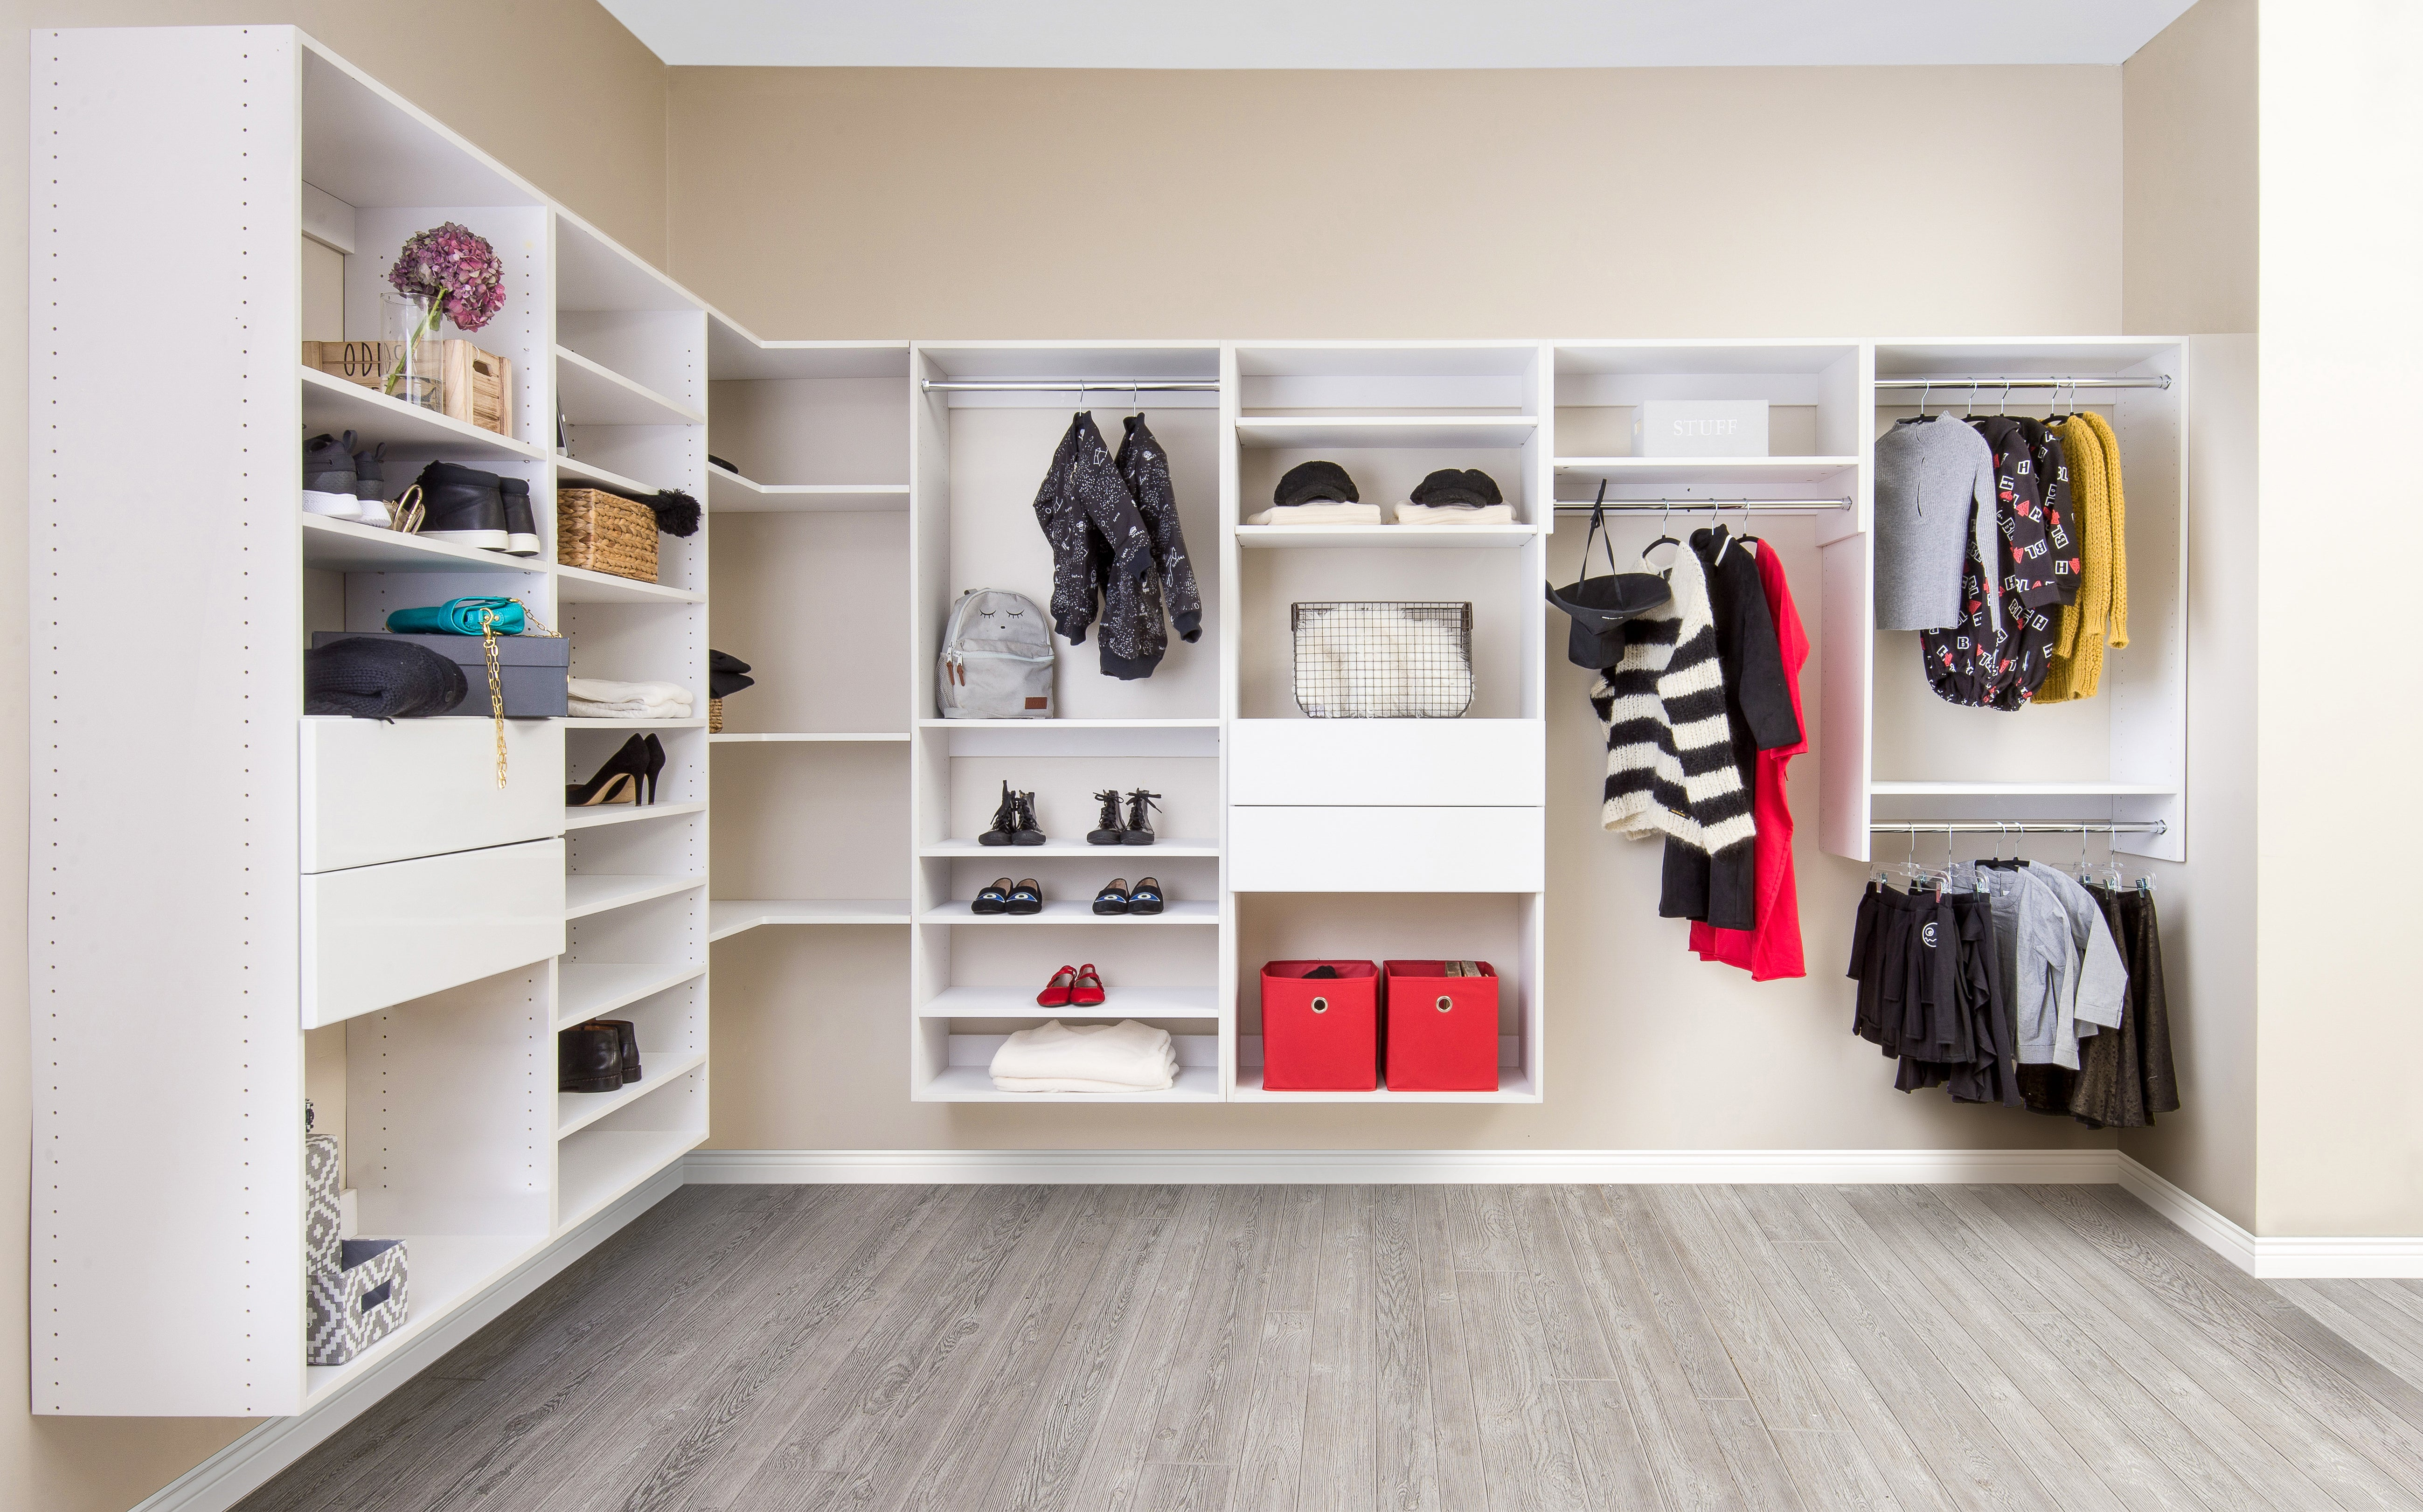 Charmant 3 Of The Best Closet System Hacks To Level Up Your Home Organization This  Fall